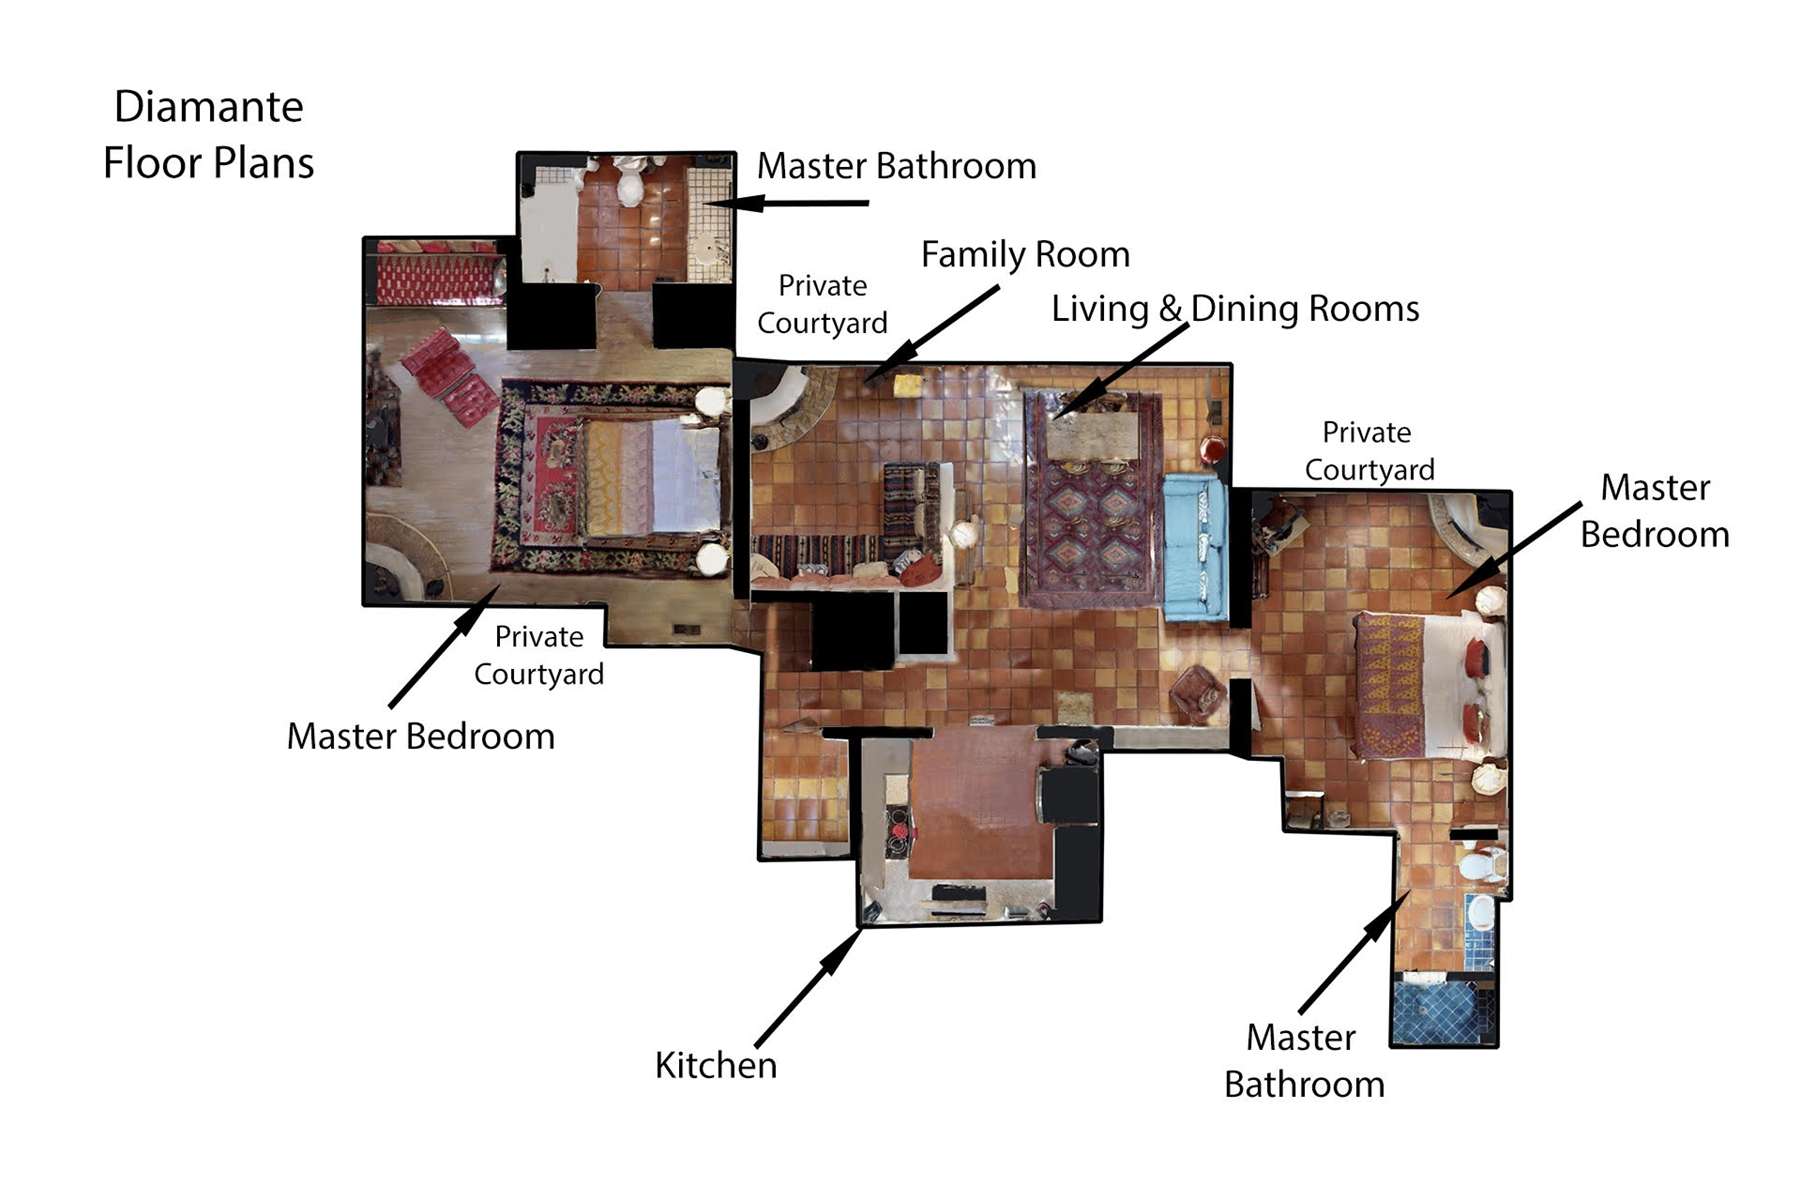 Floor Plan for Diamante